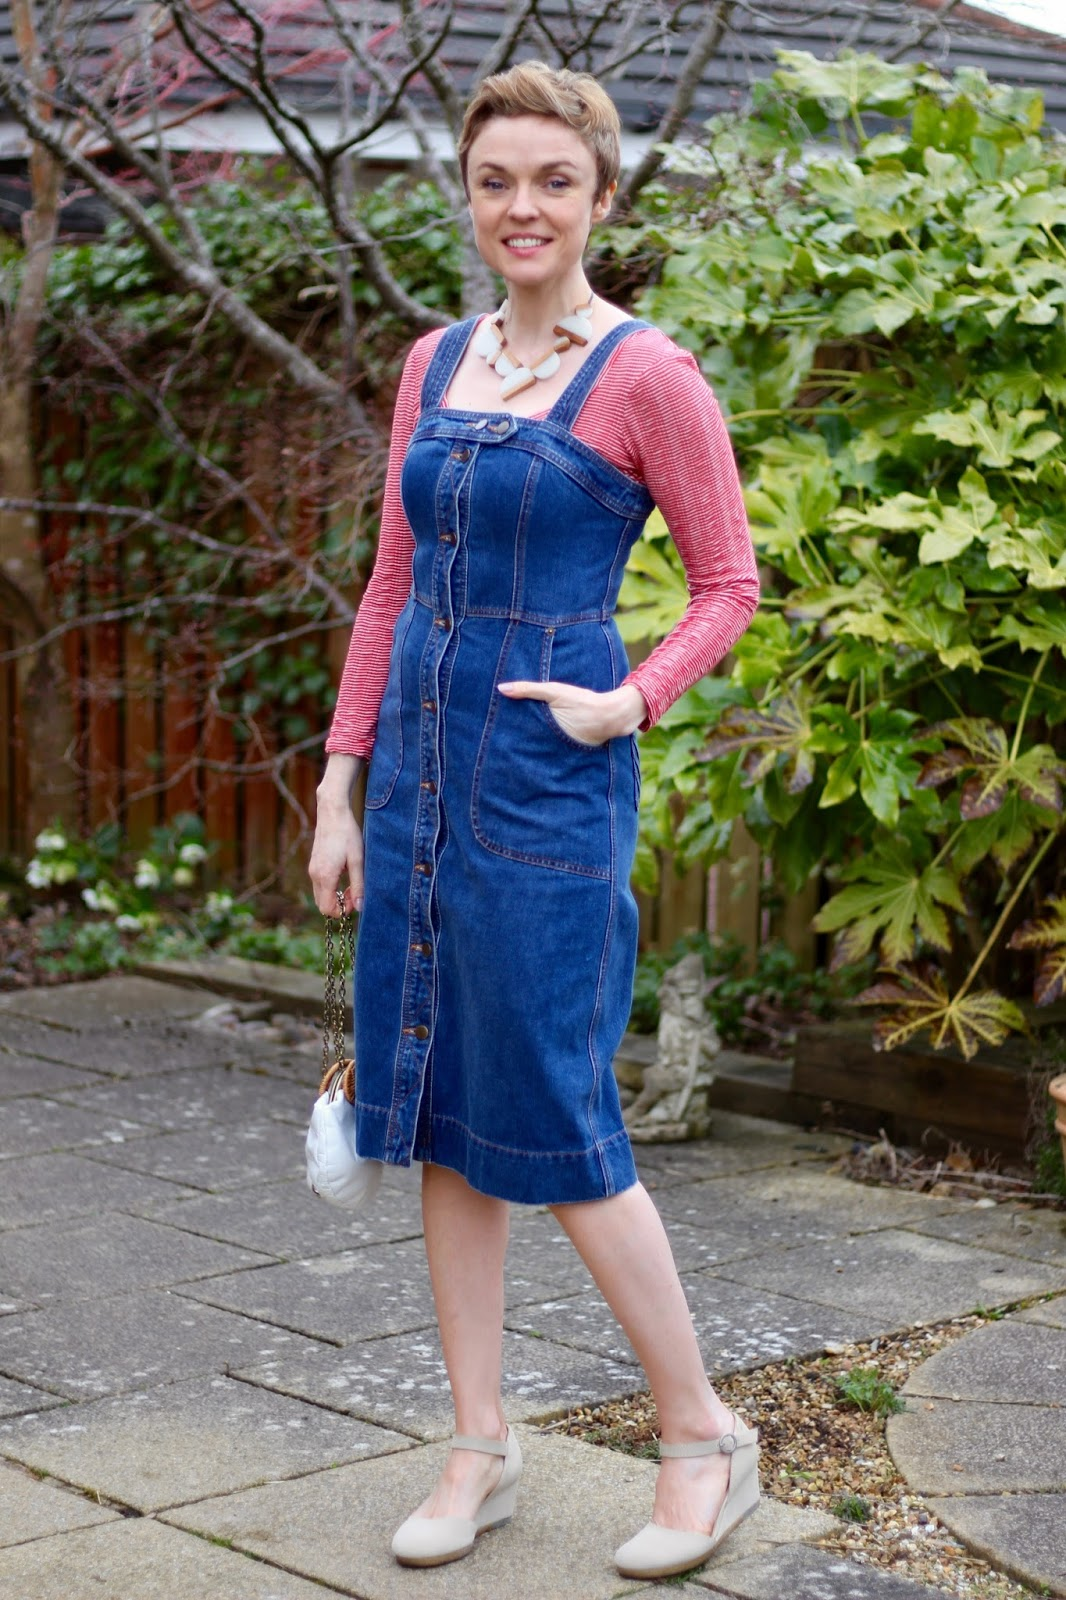 Denim Pinafore Dress & Red Stripes | Casual Style over 40 | Fake Fabulous